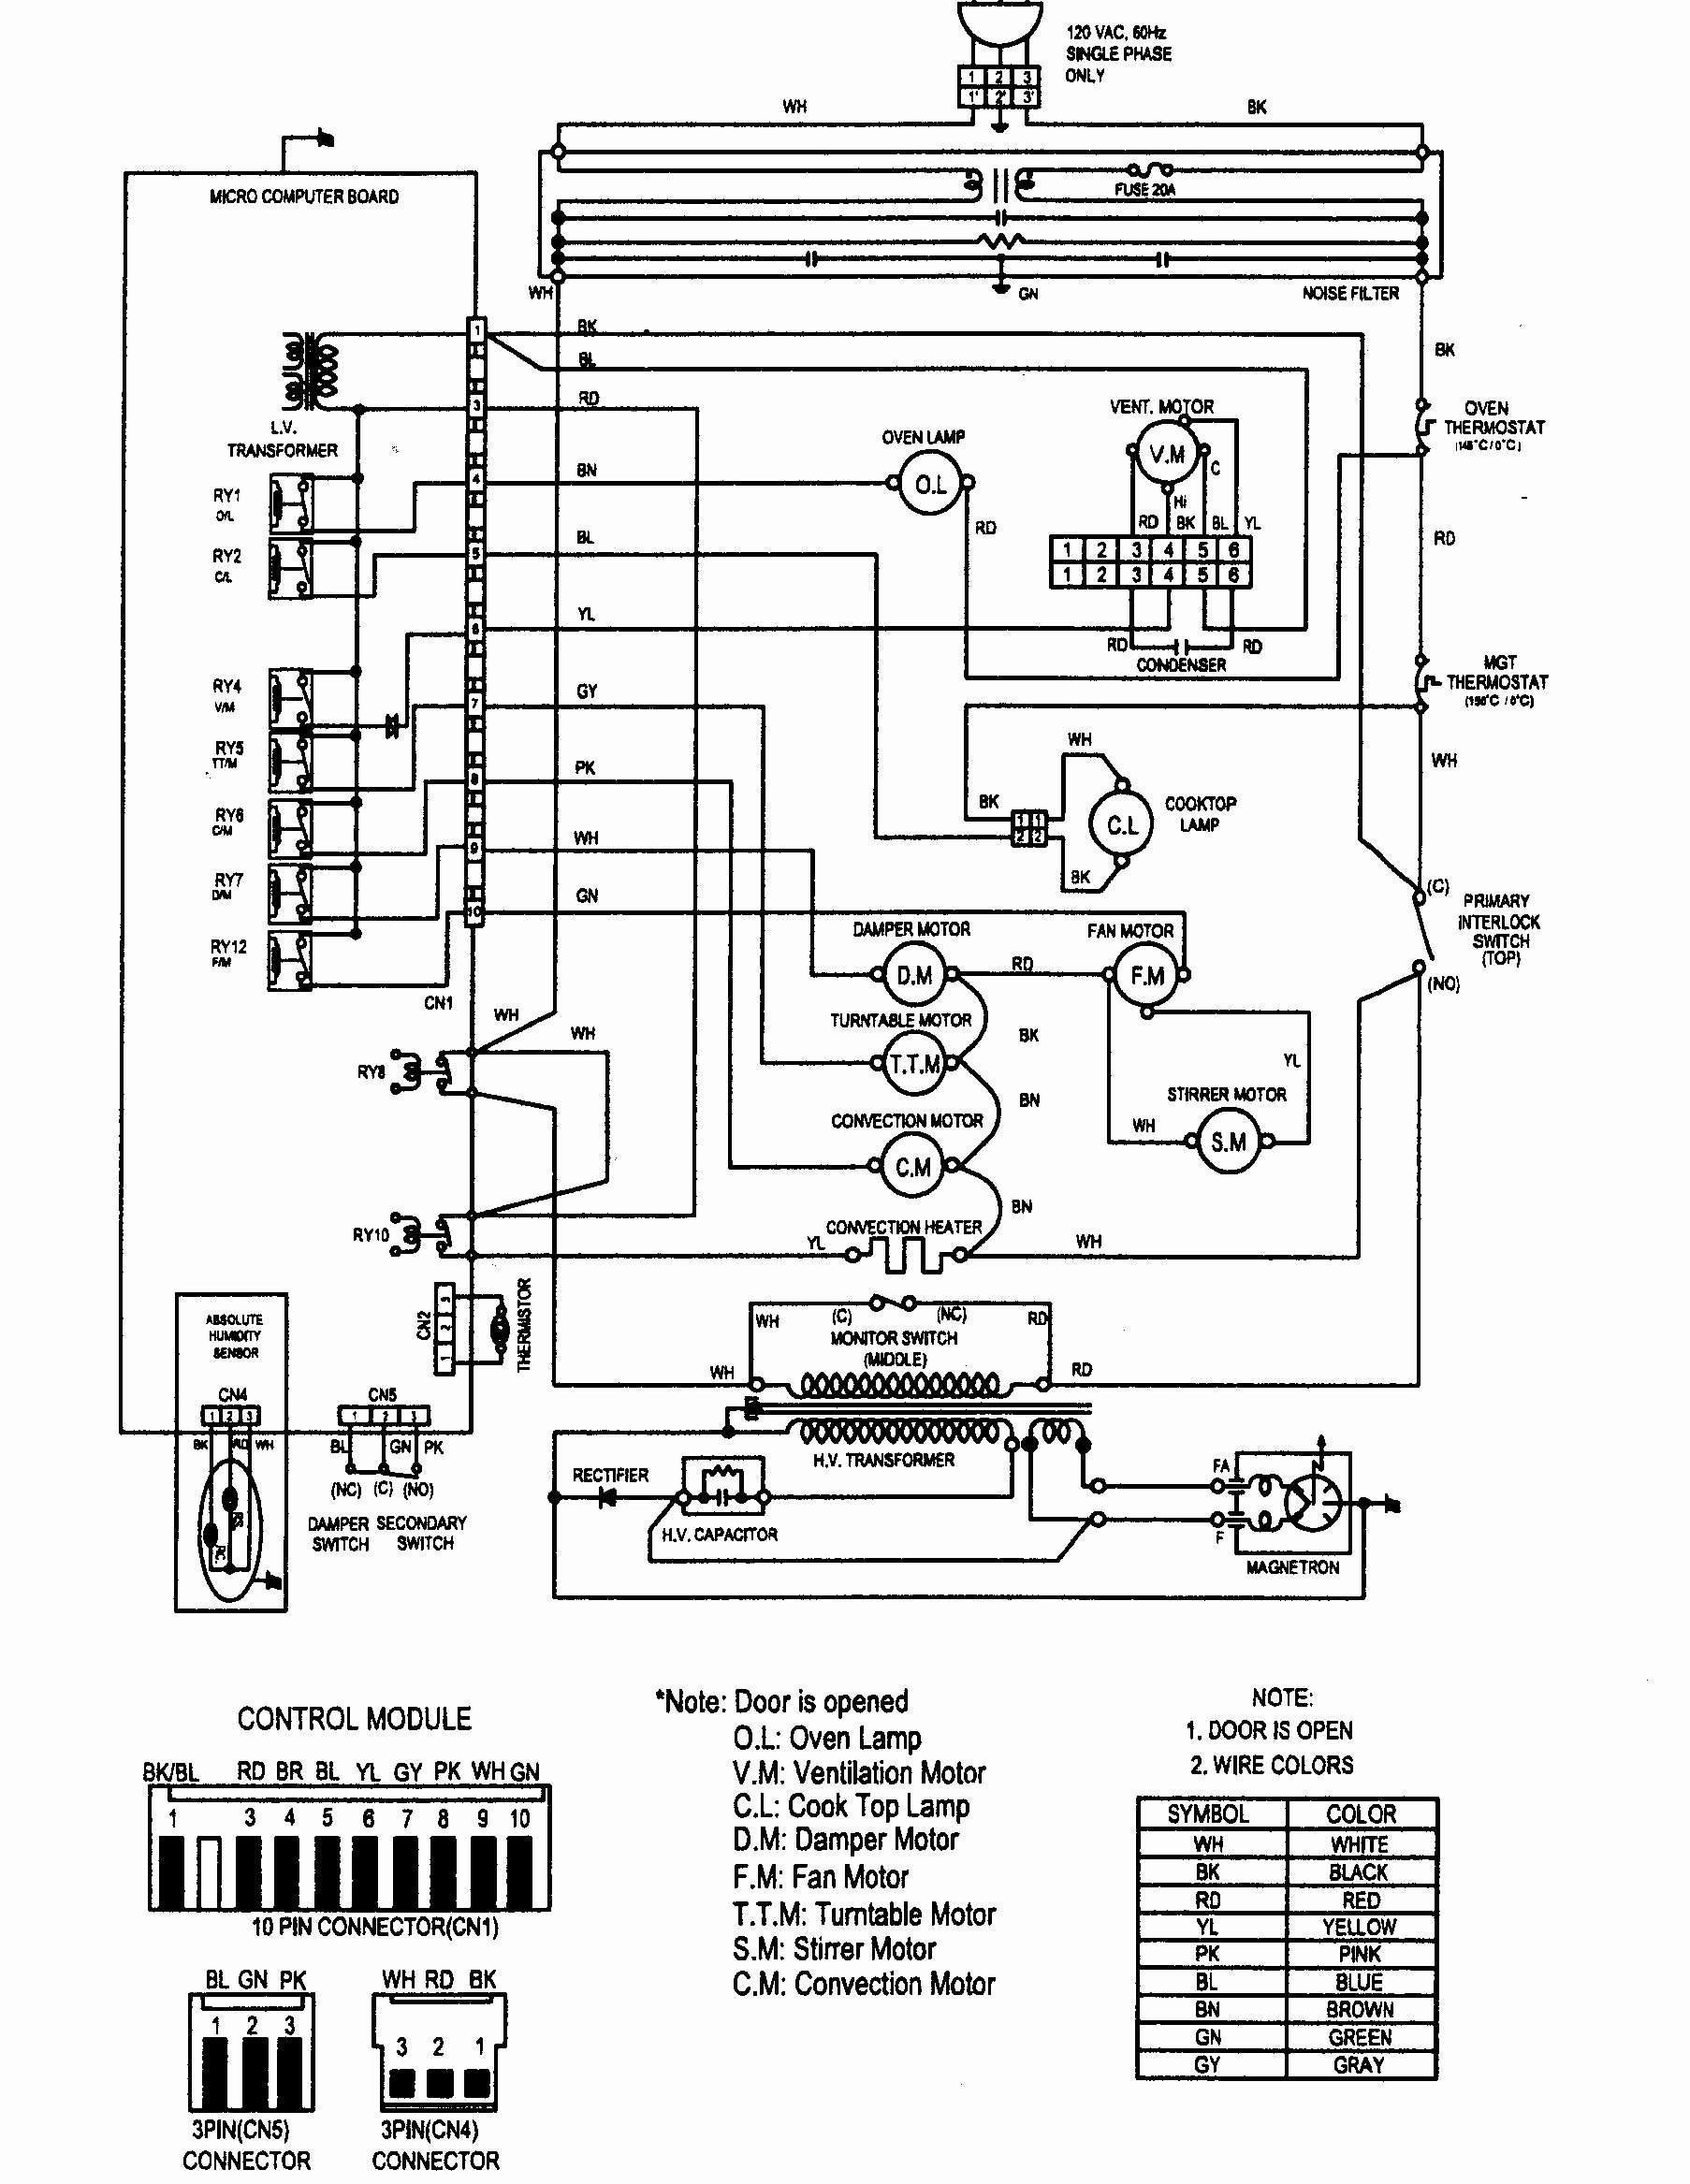 kenmore side by side refrigerator wiring diagram Collection-Kenmore Upright Freezers Glamorous Kenmore Elite Refrigerator Wiring Diagram Katherinemarie 3-q